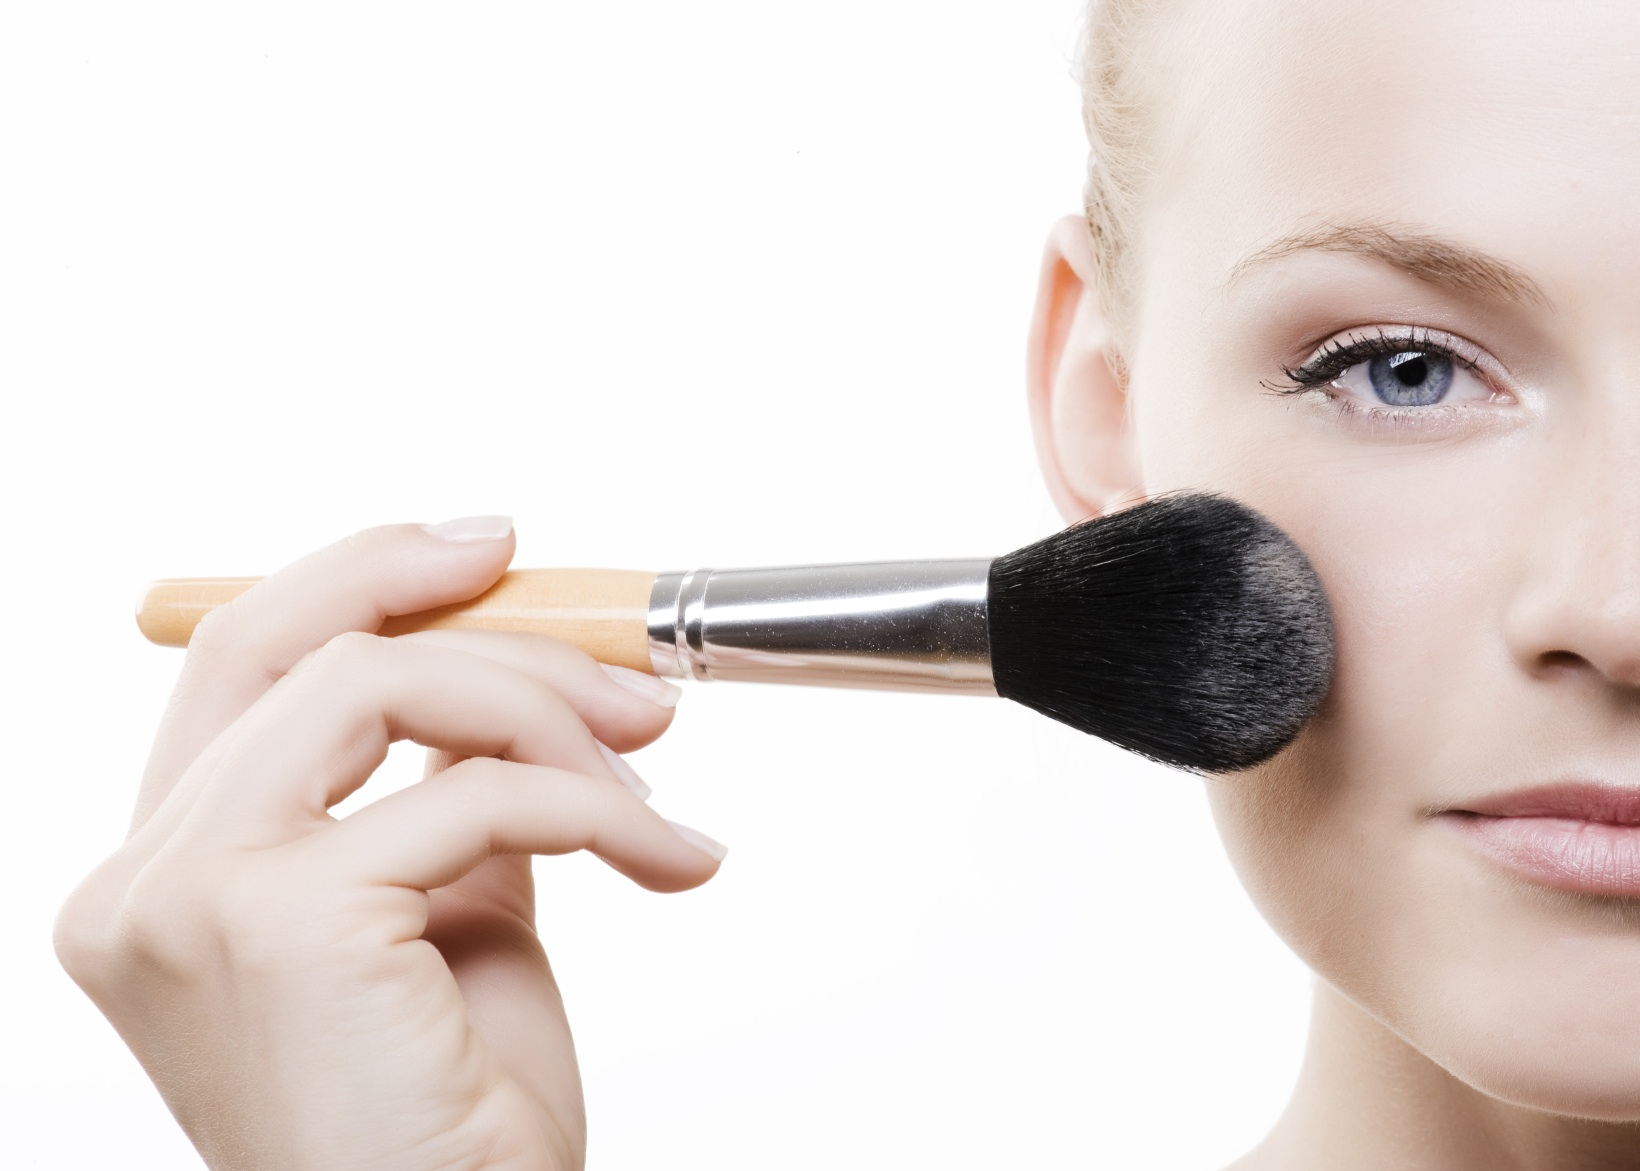 Acne Makeup - AcneSkinExpert's Guide to buying makeup that won't cause breakouts